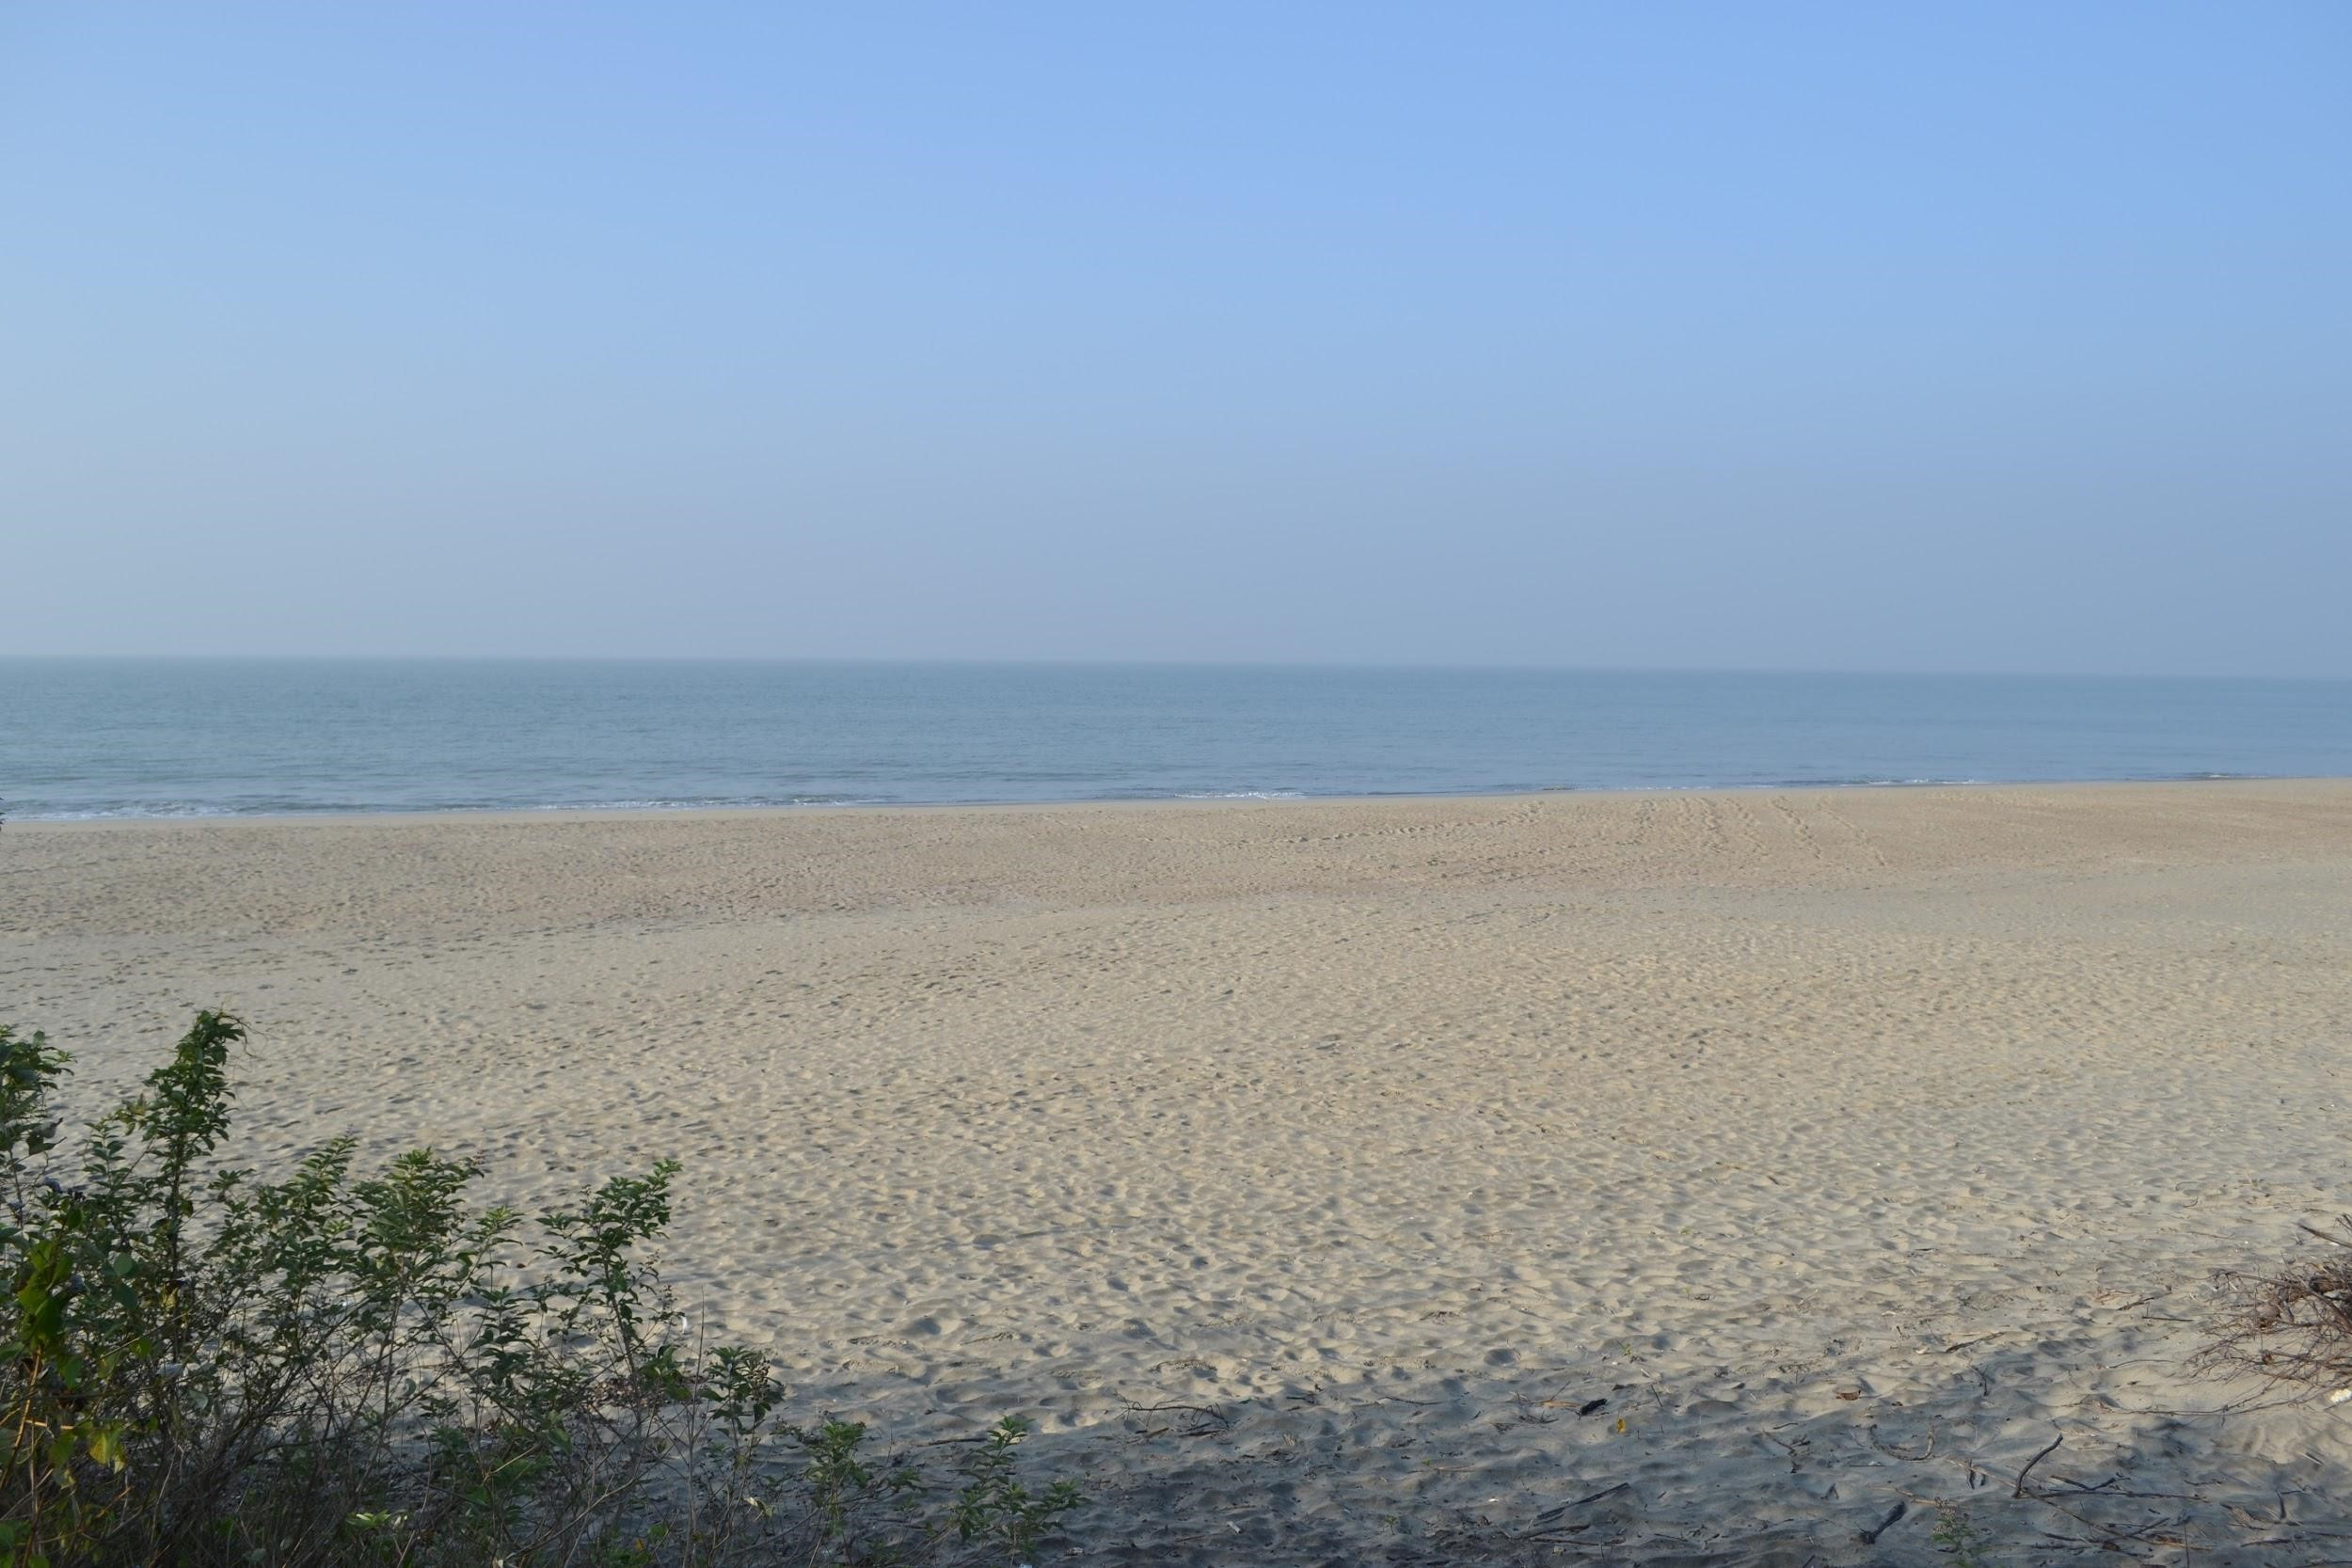 Sand Beach and Ocean Cox's Bazar